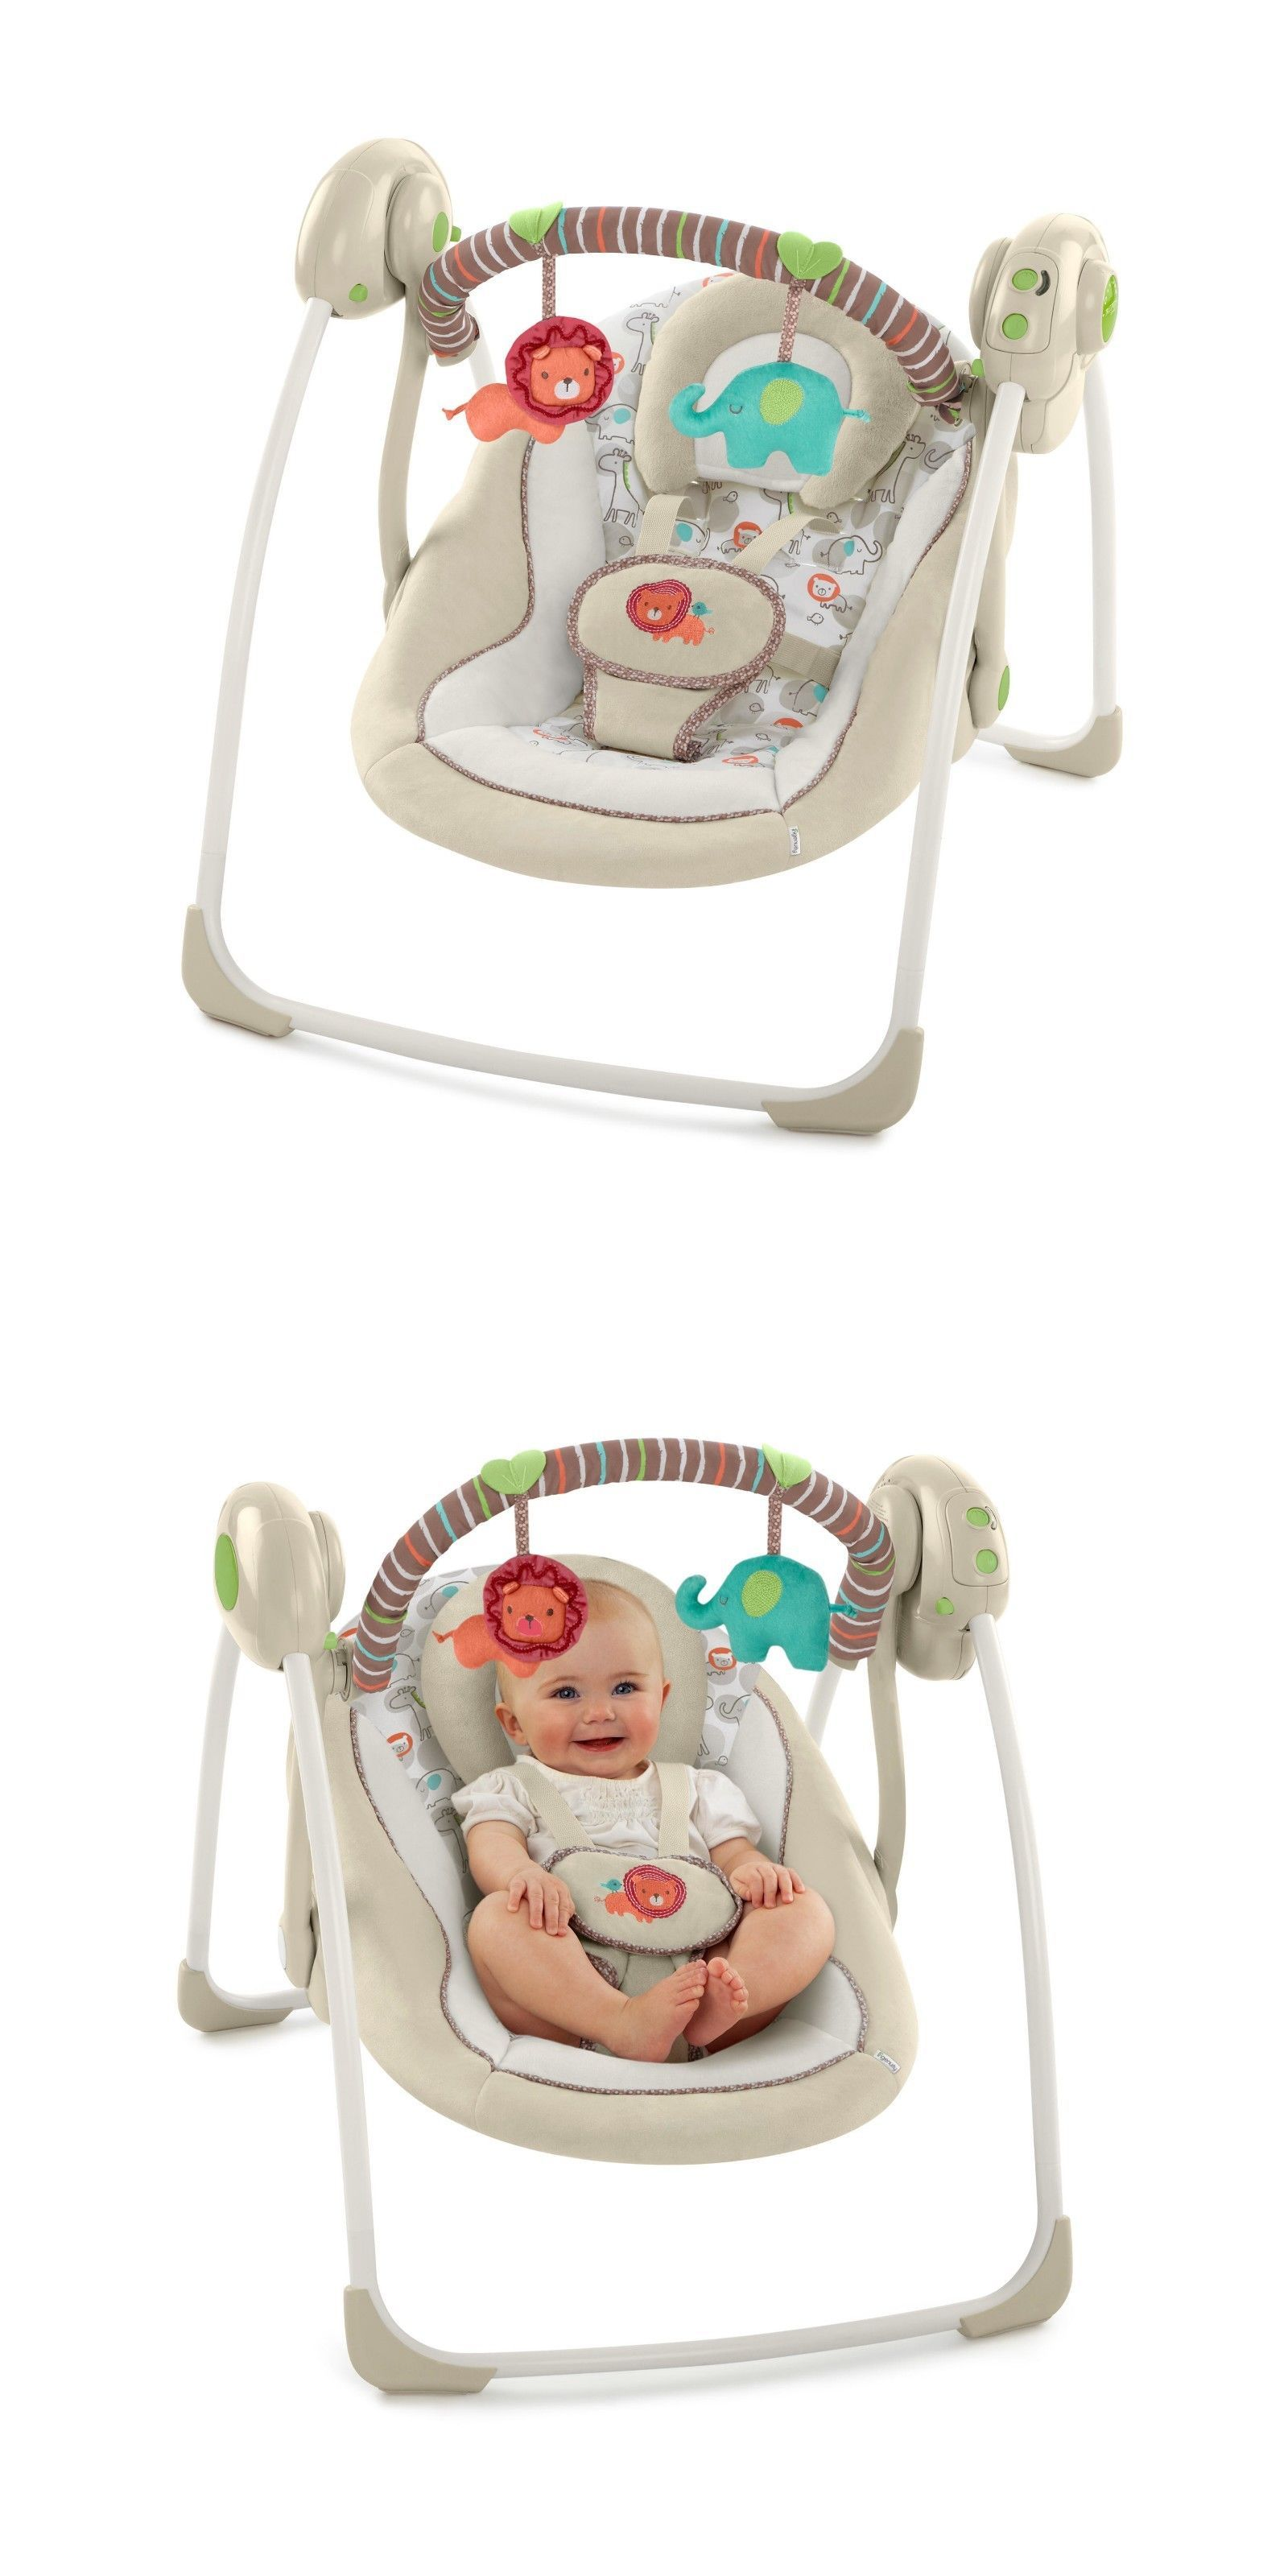 52f0fcd88 Baby Gear 100223  Ingenuity Portable Swing Cozy Kingdom -  Best ...